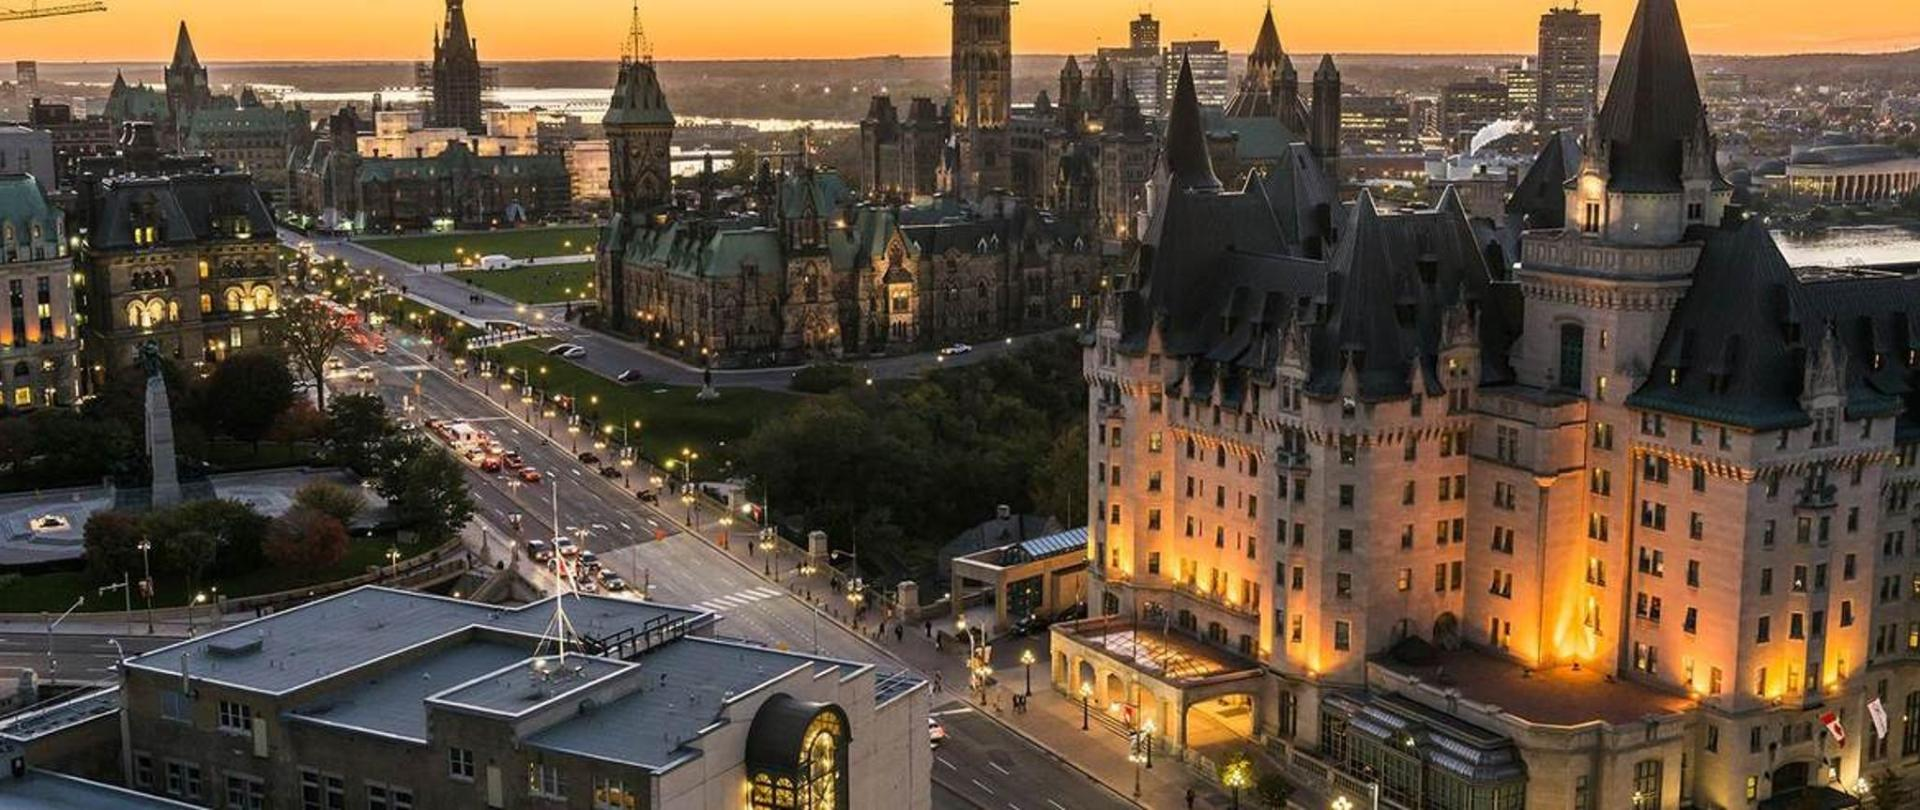 panoramic-view-of-downtown-ottawa-with-parliament-hill_016-credit-ottawa-tourism.jpg.1170x493_default.jpg